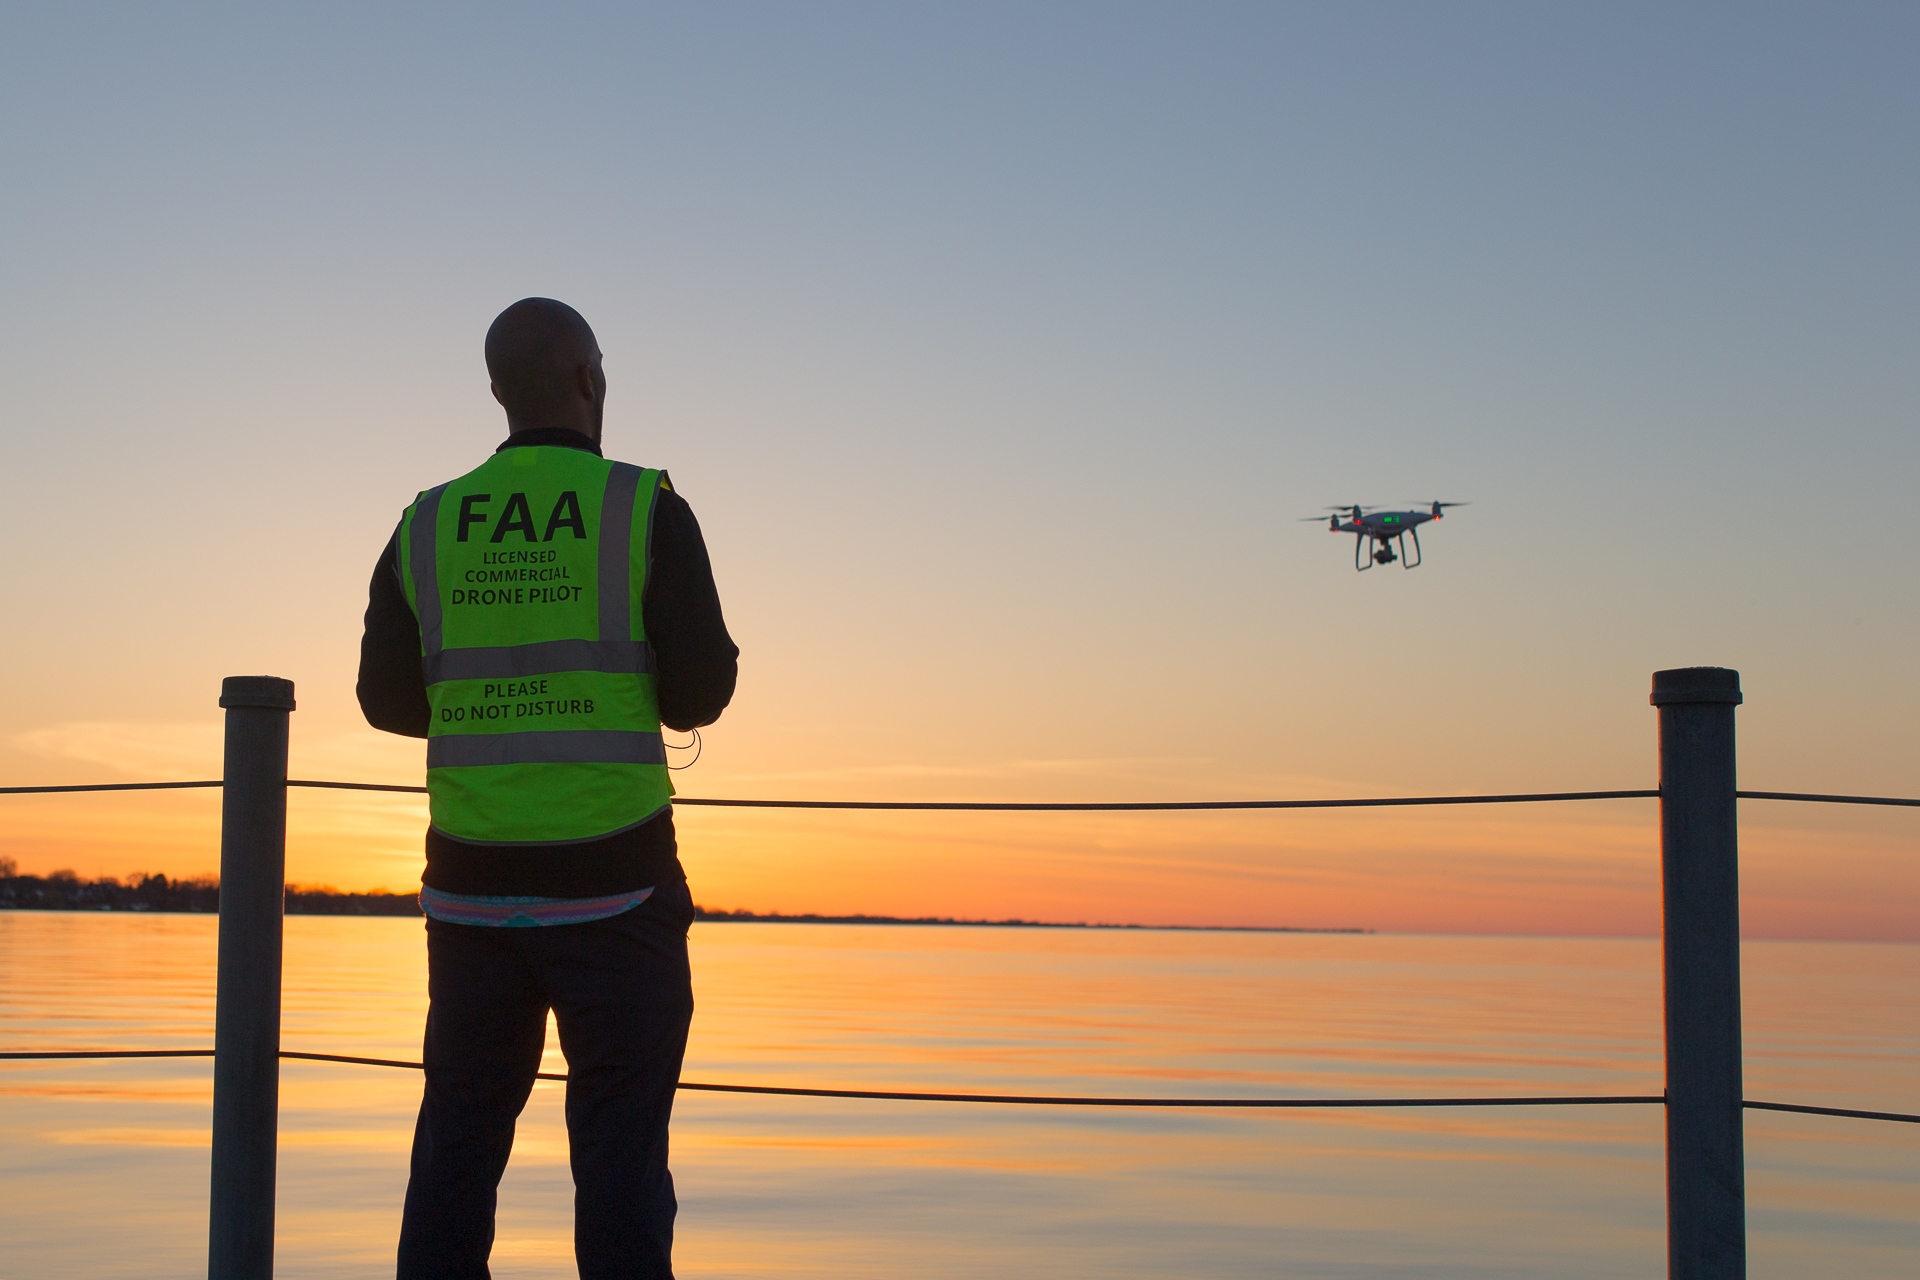 Drone Pilot With Drone in sight